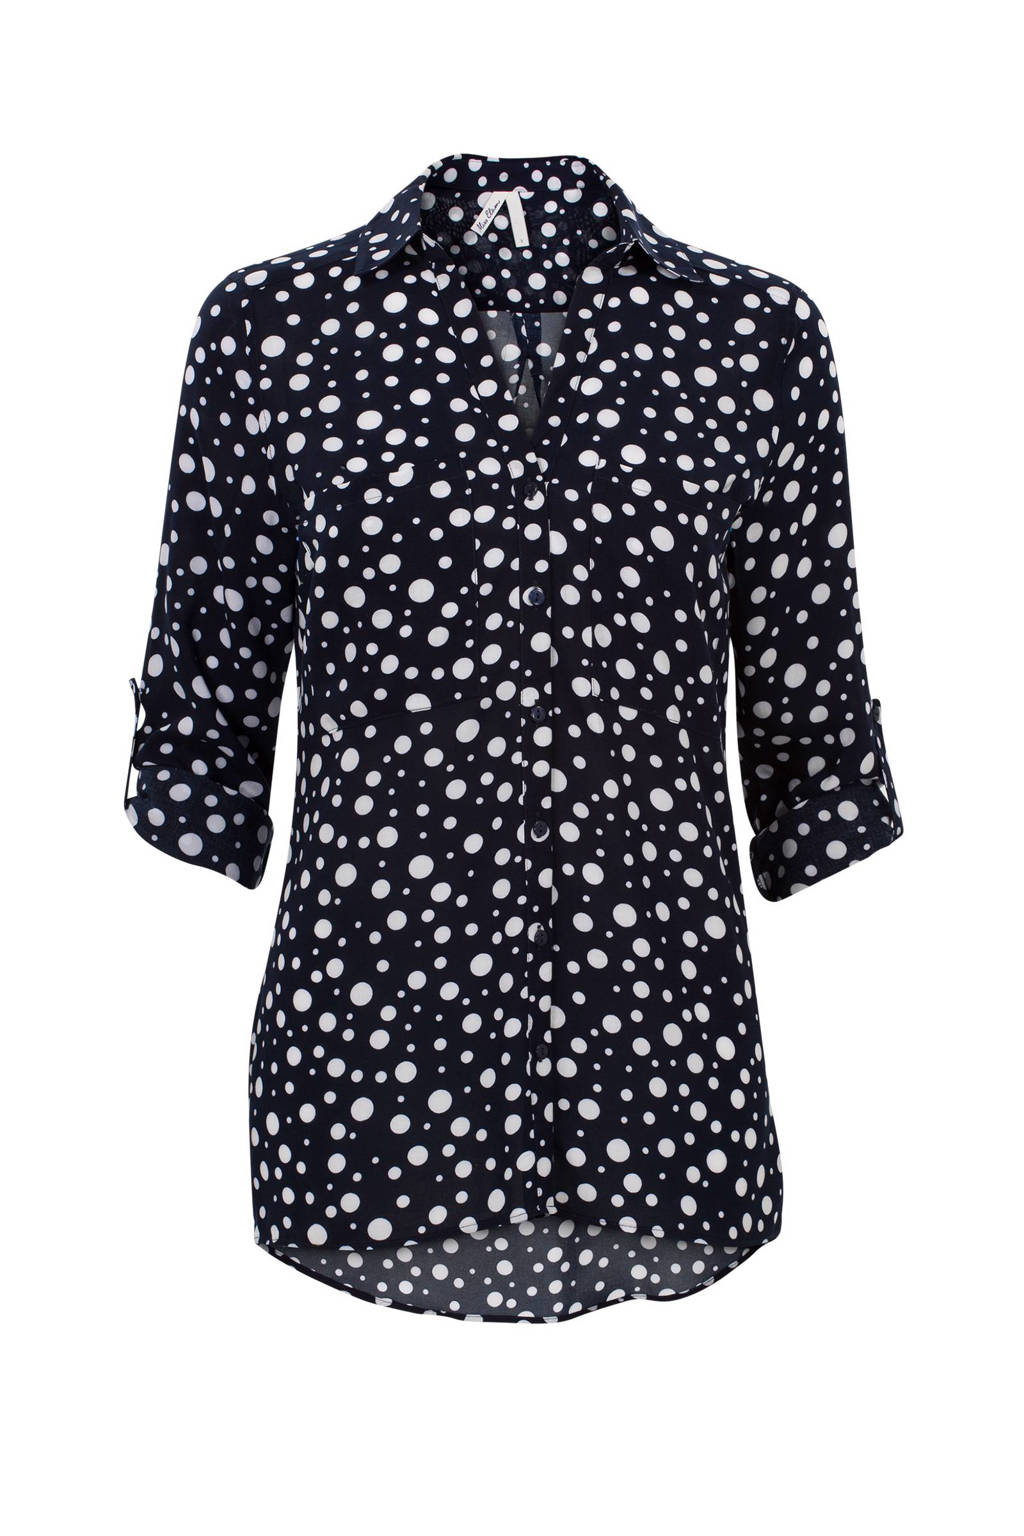 Miss Etam Regulier blouse, Blauw